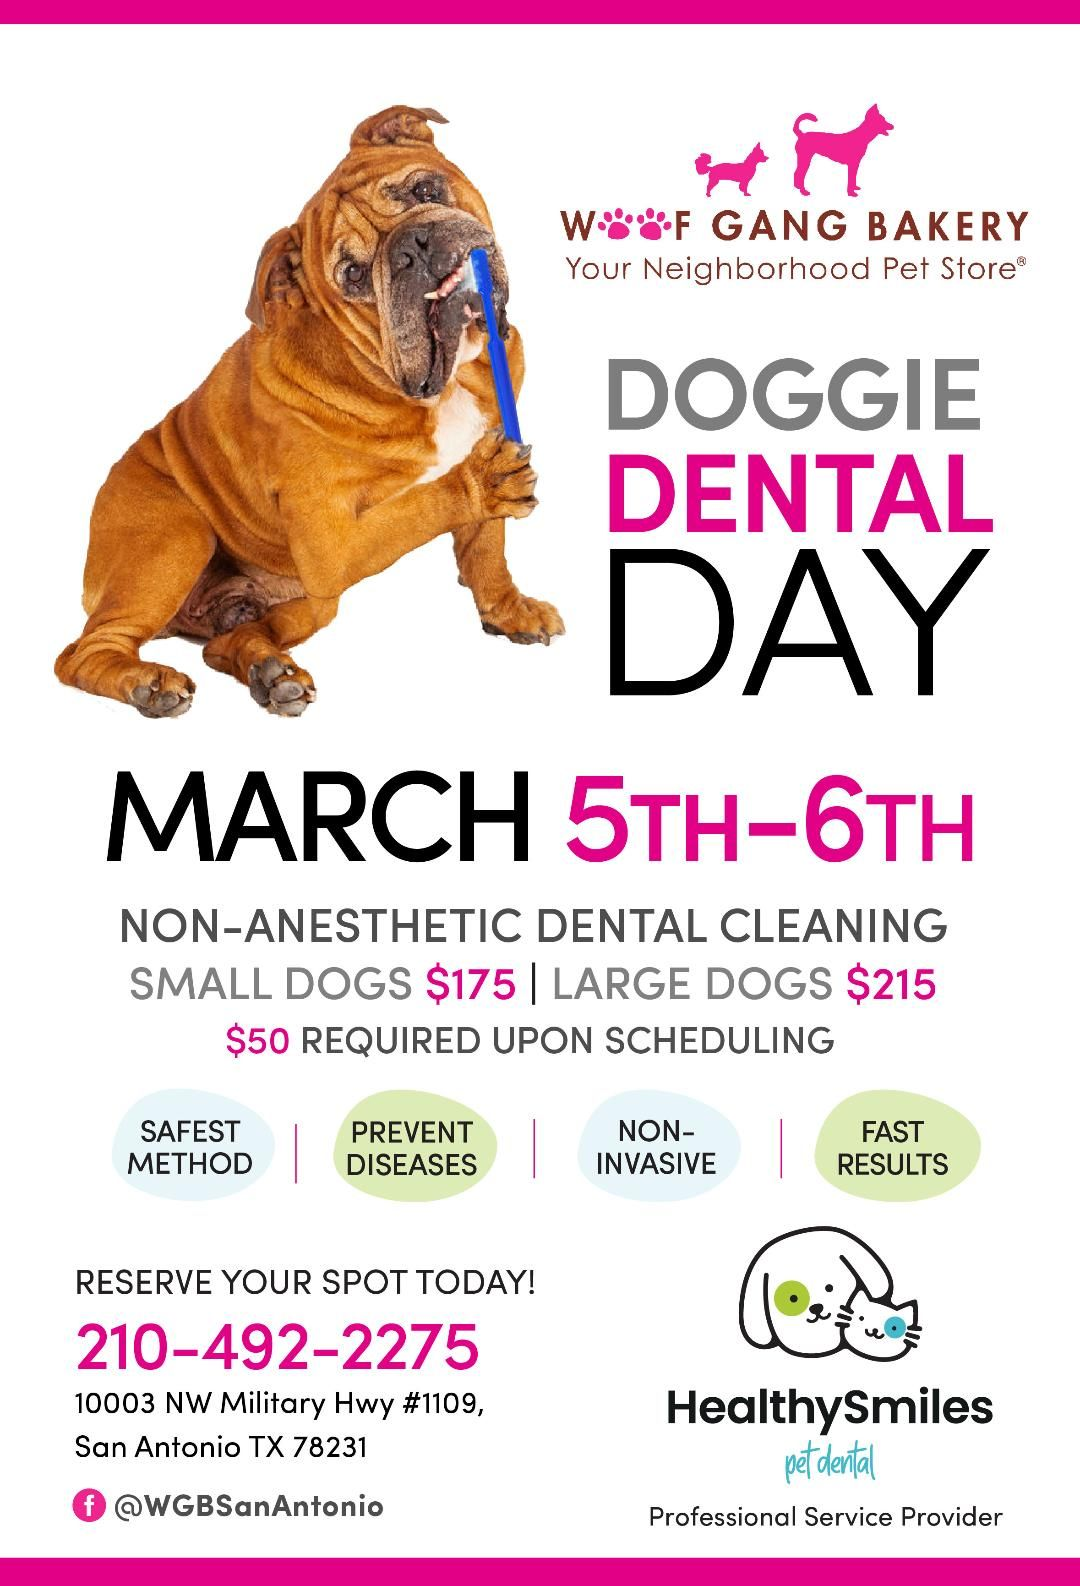 ANETHESIA FREE DENTAL CLEANINGS!